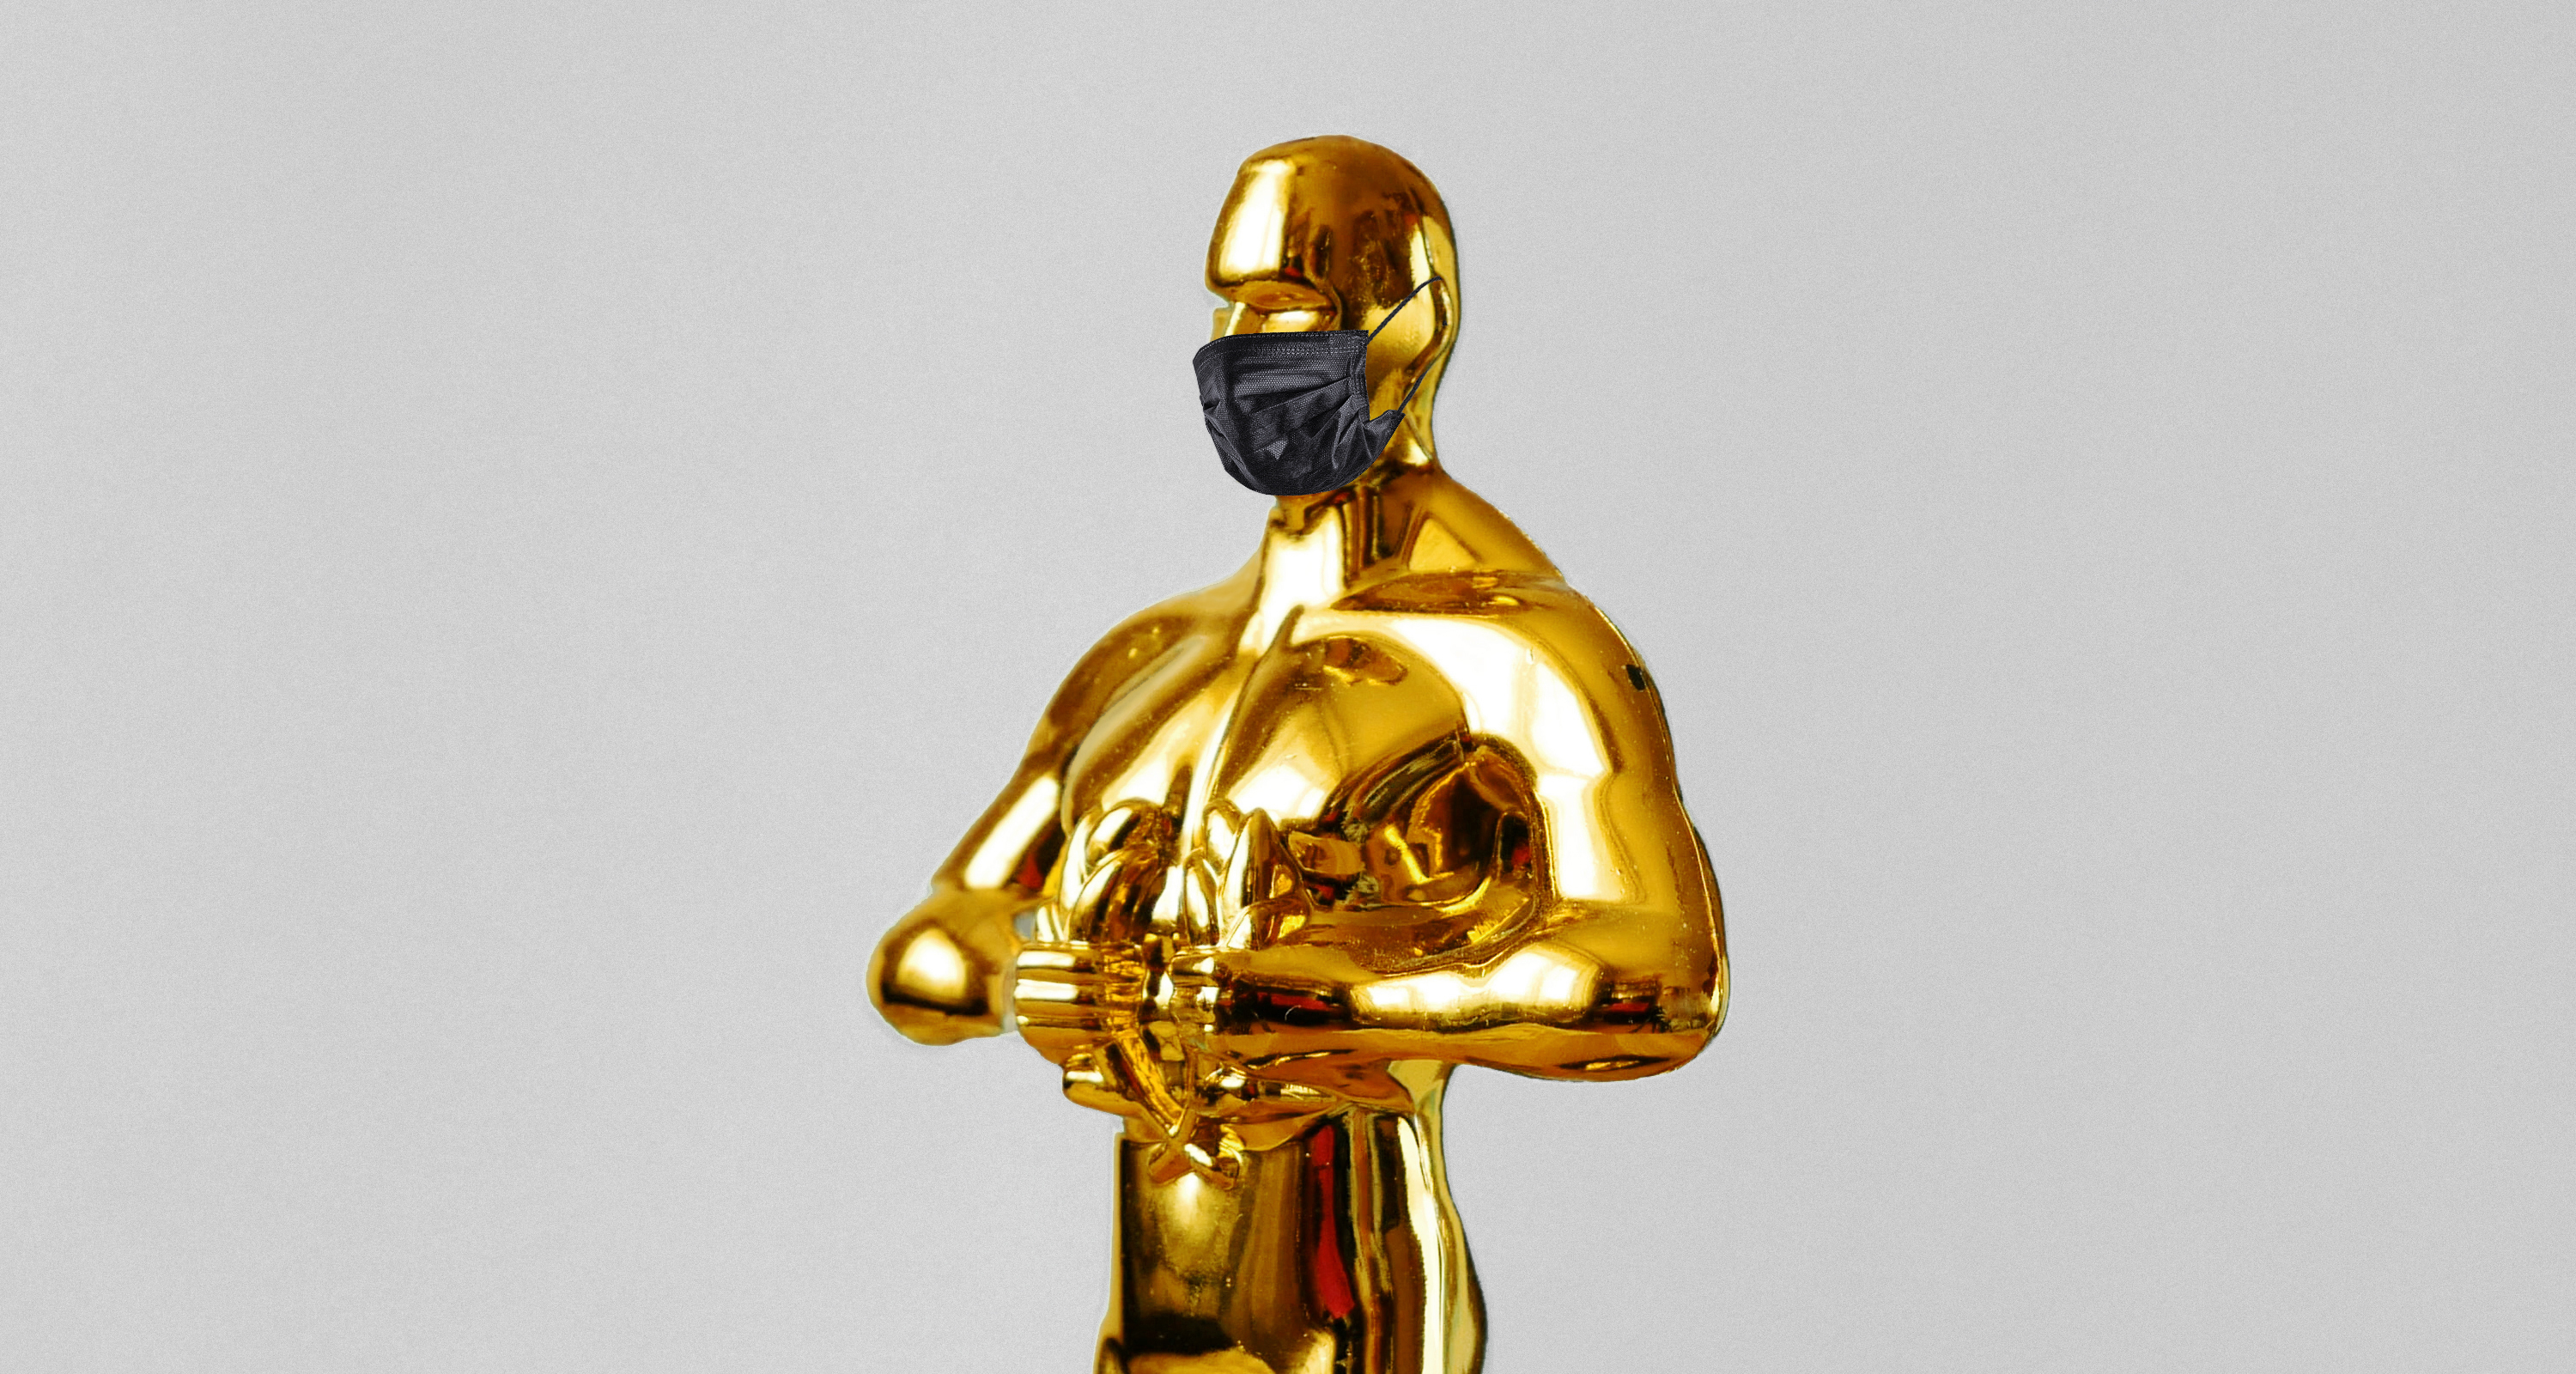 An Oscar statuette wearing a surgical mask.